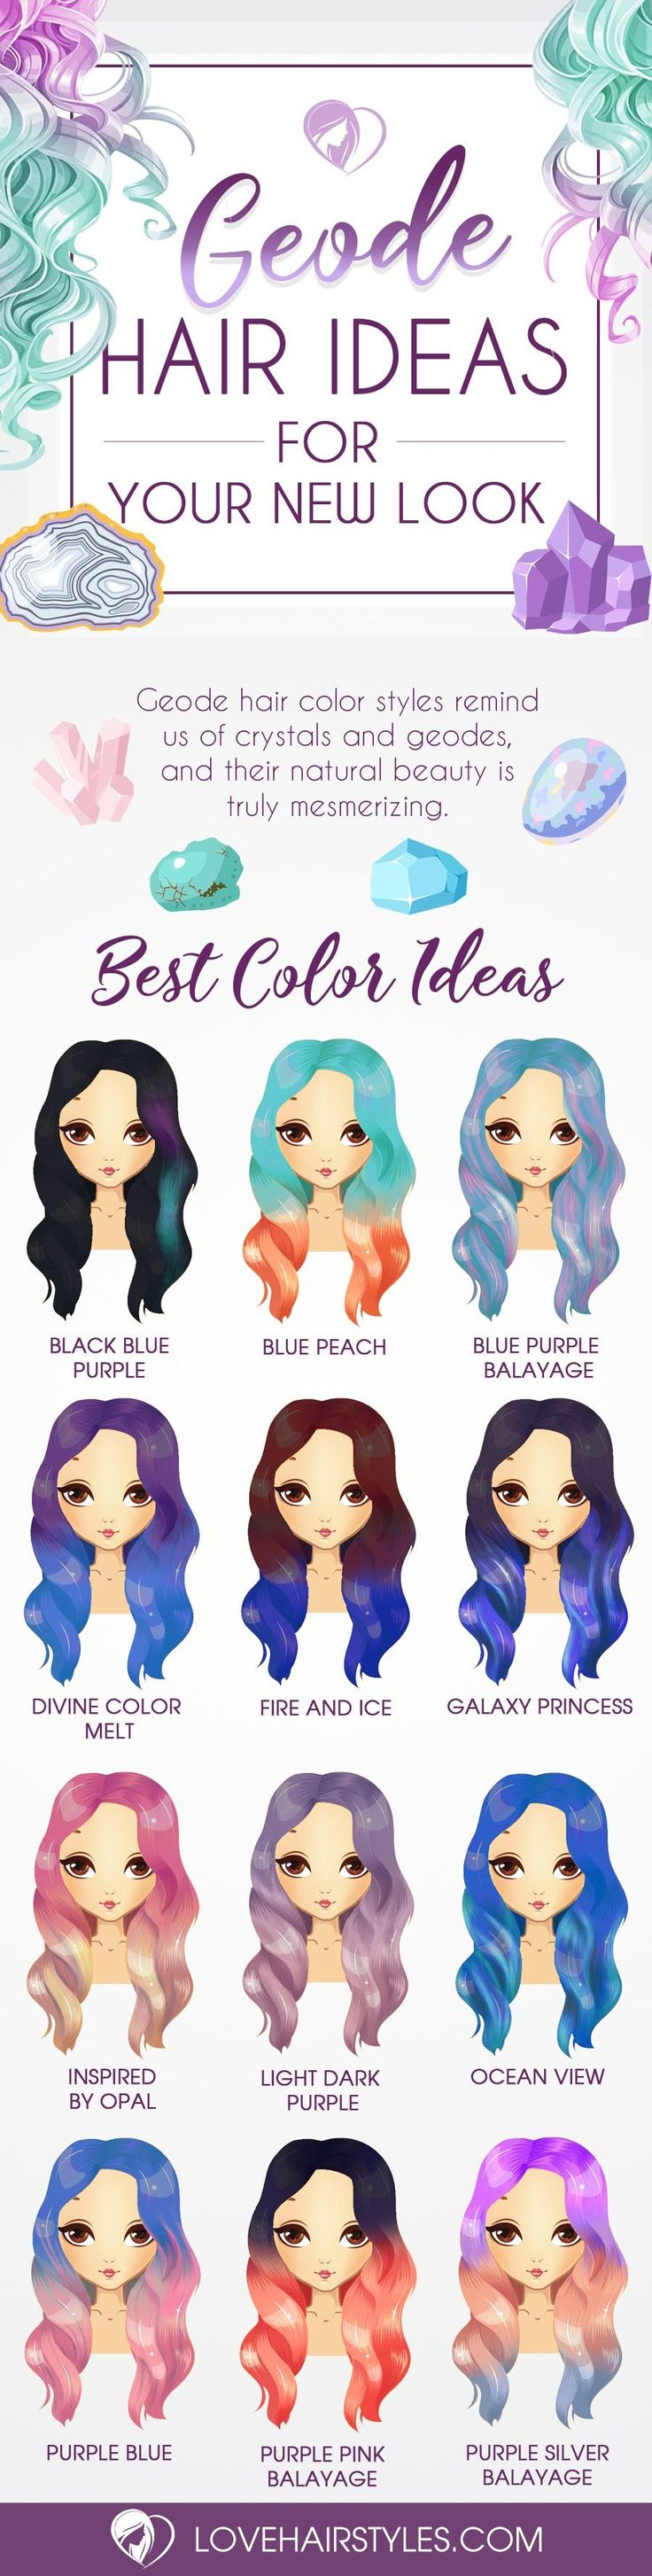 best hairstyles images on pinterest colourful hair hair colors